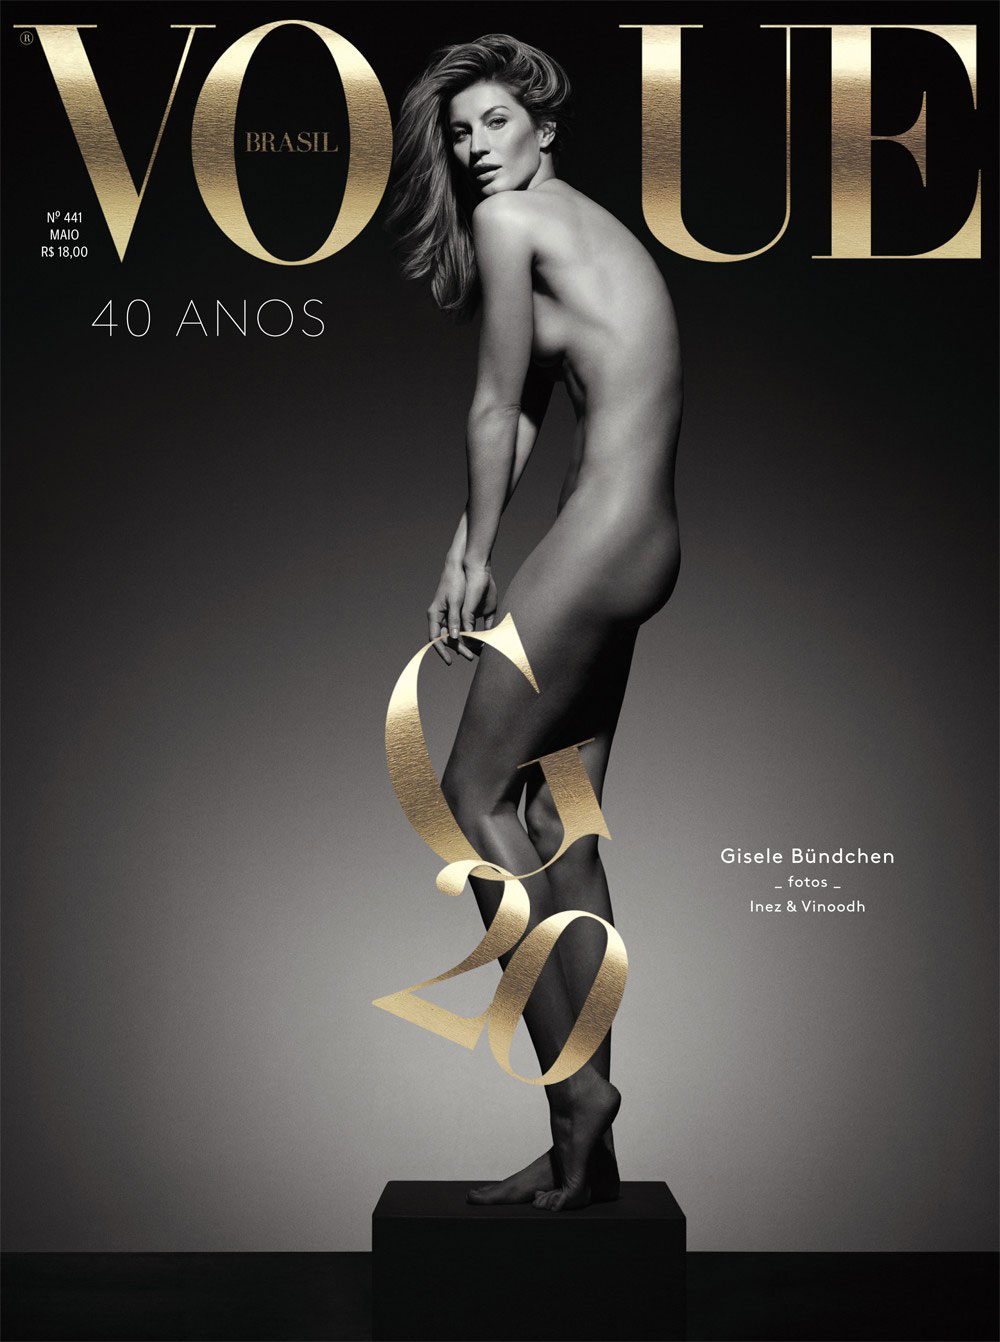 Gisele Bundchen Vogue Brasil cover May 2015